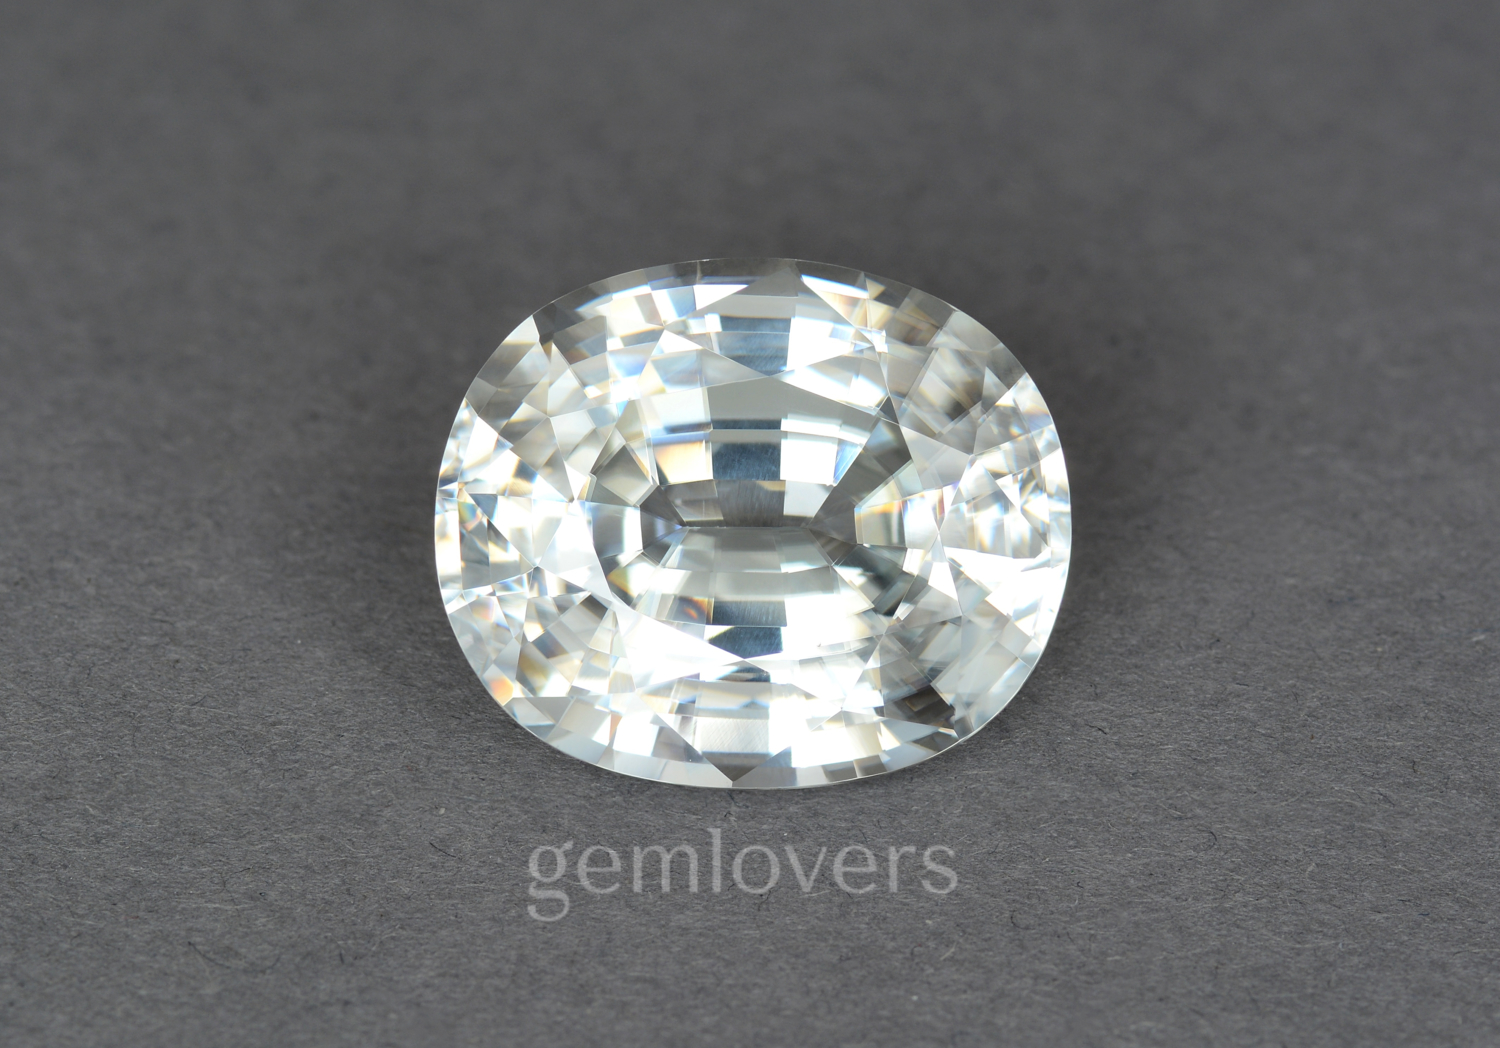 Large colorless natural zircon stone